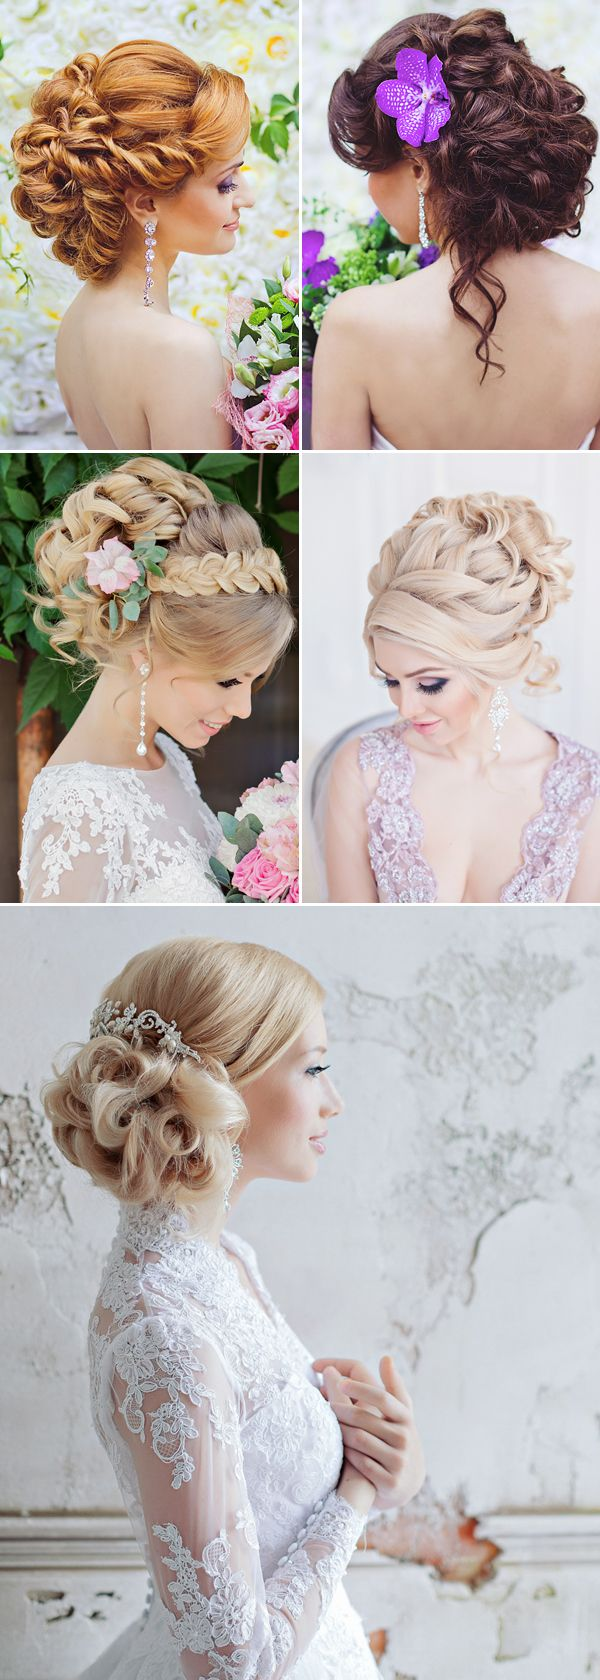 23 seriously creative bridal hairstyles like no other